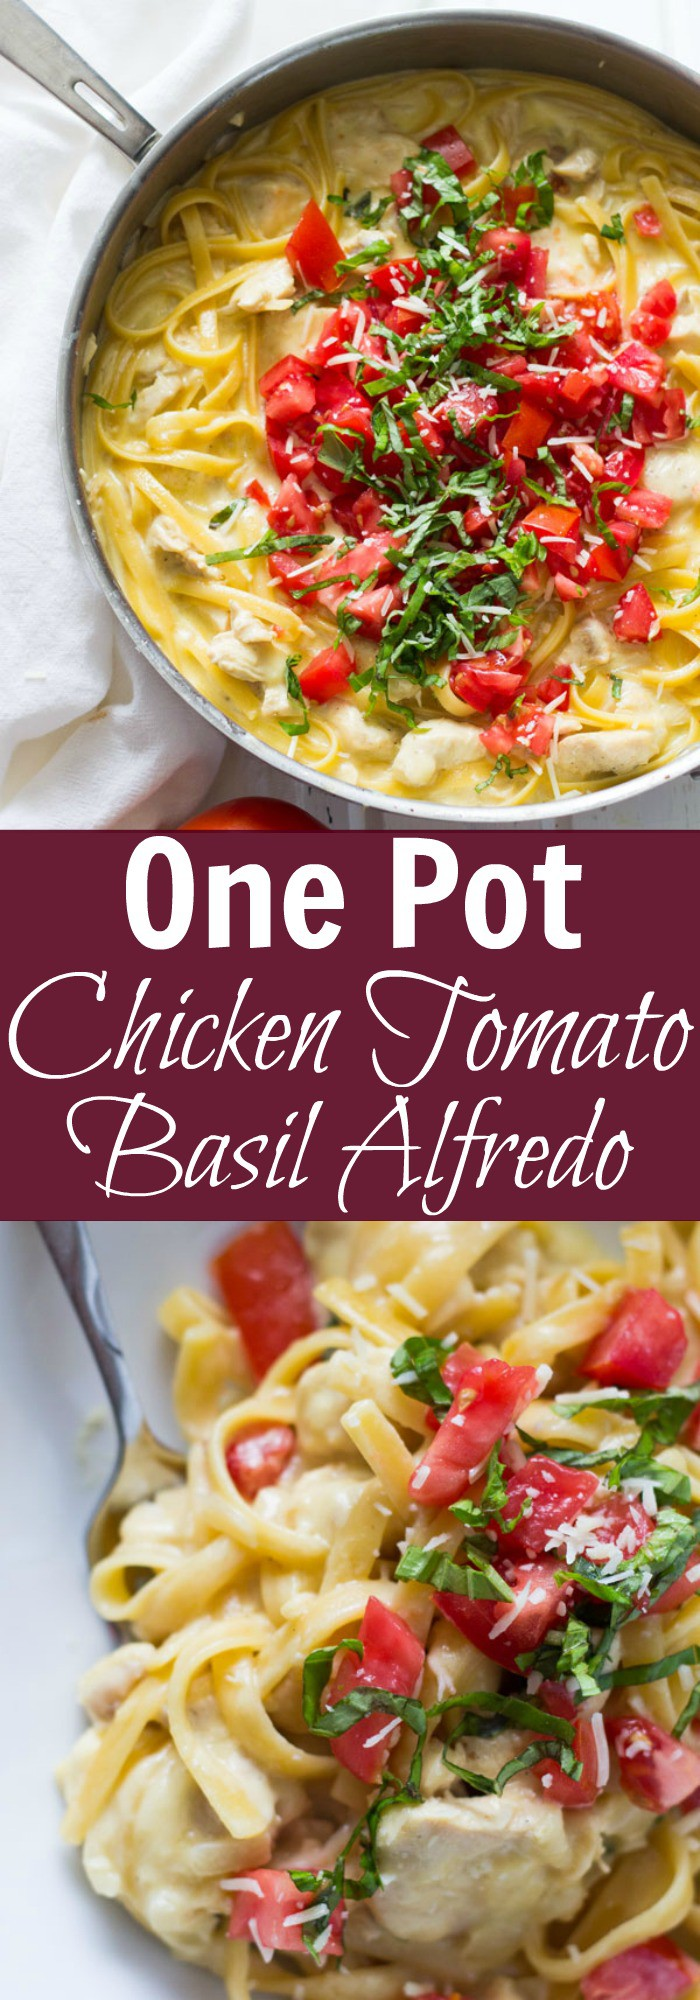 One Pot Chicken Tomato Basil Alfredo -a quick and super easy meal that uses everyday ingredients but tastes amazing.